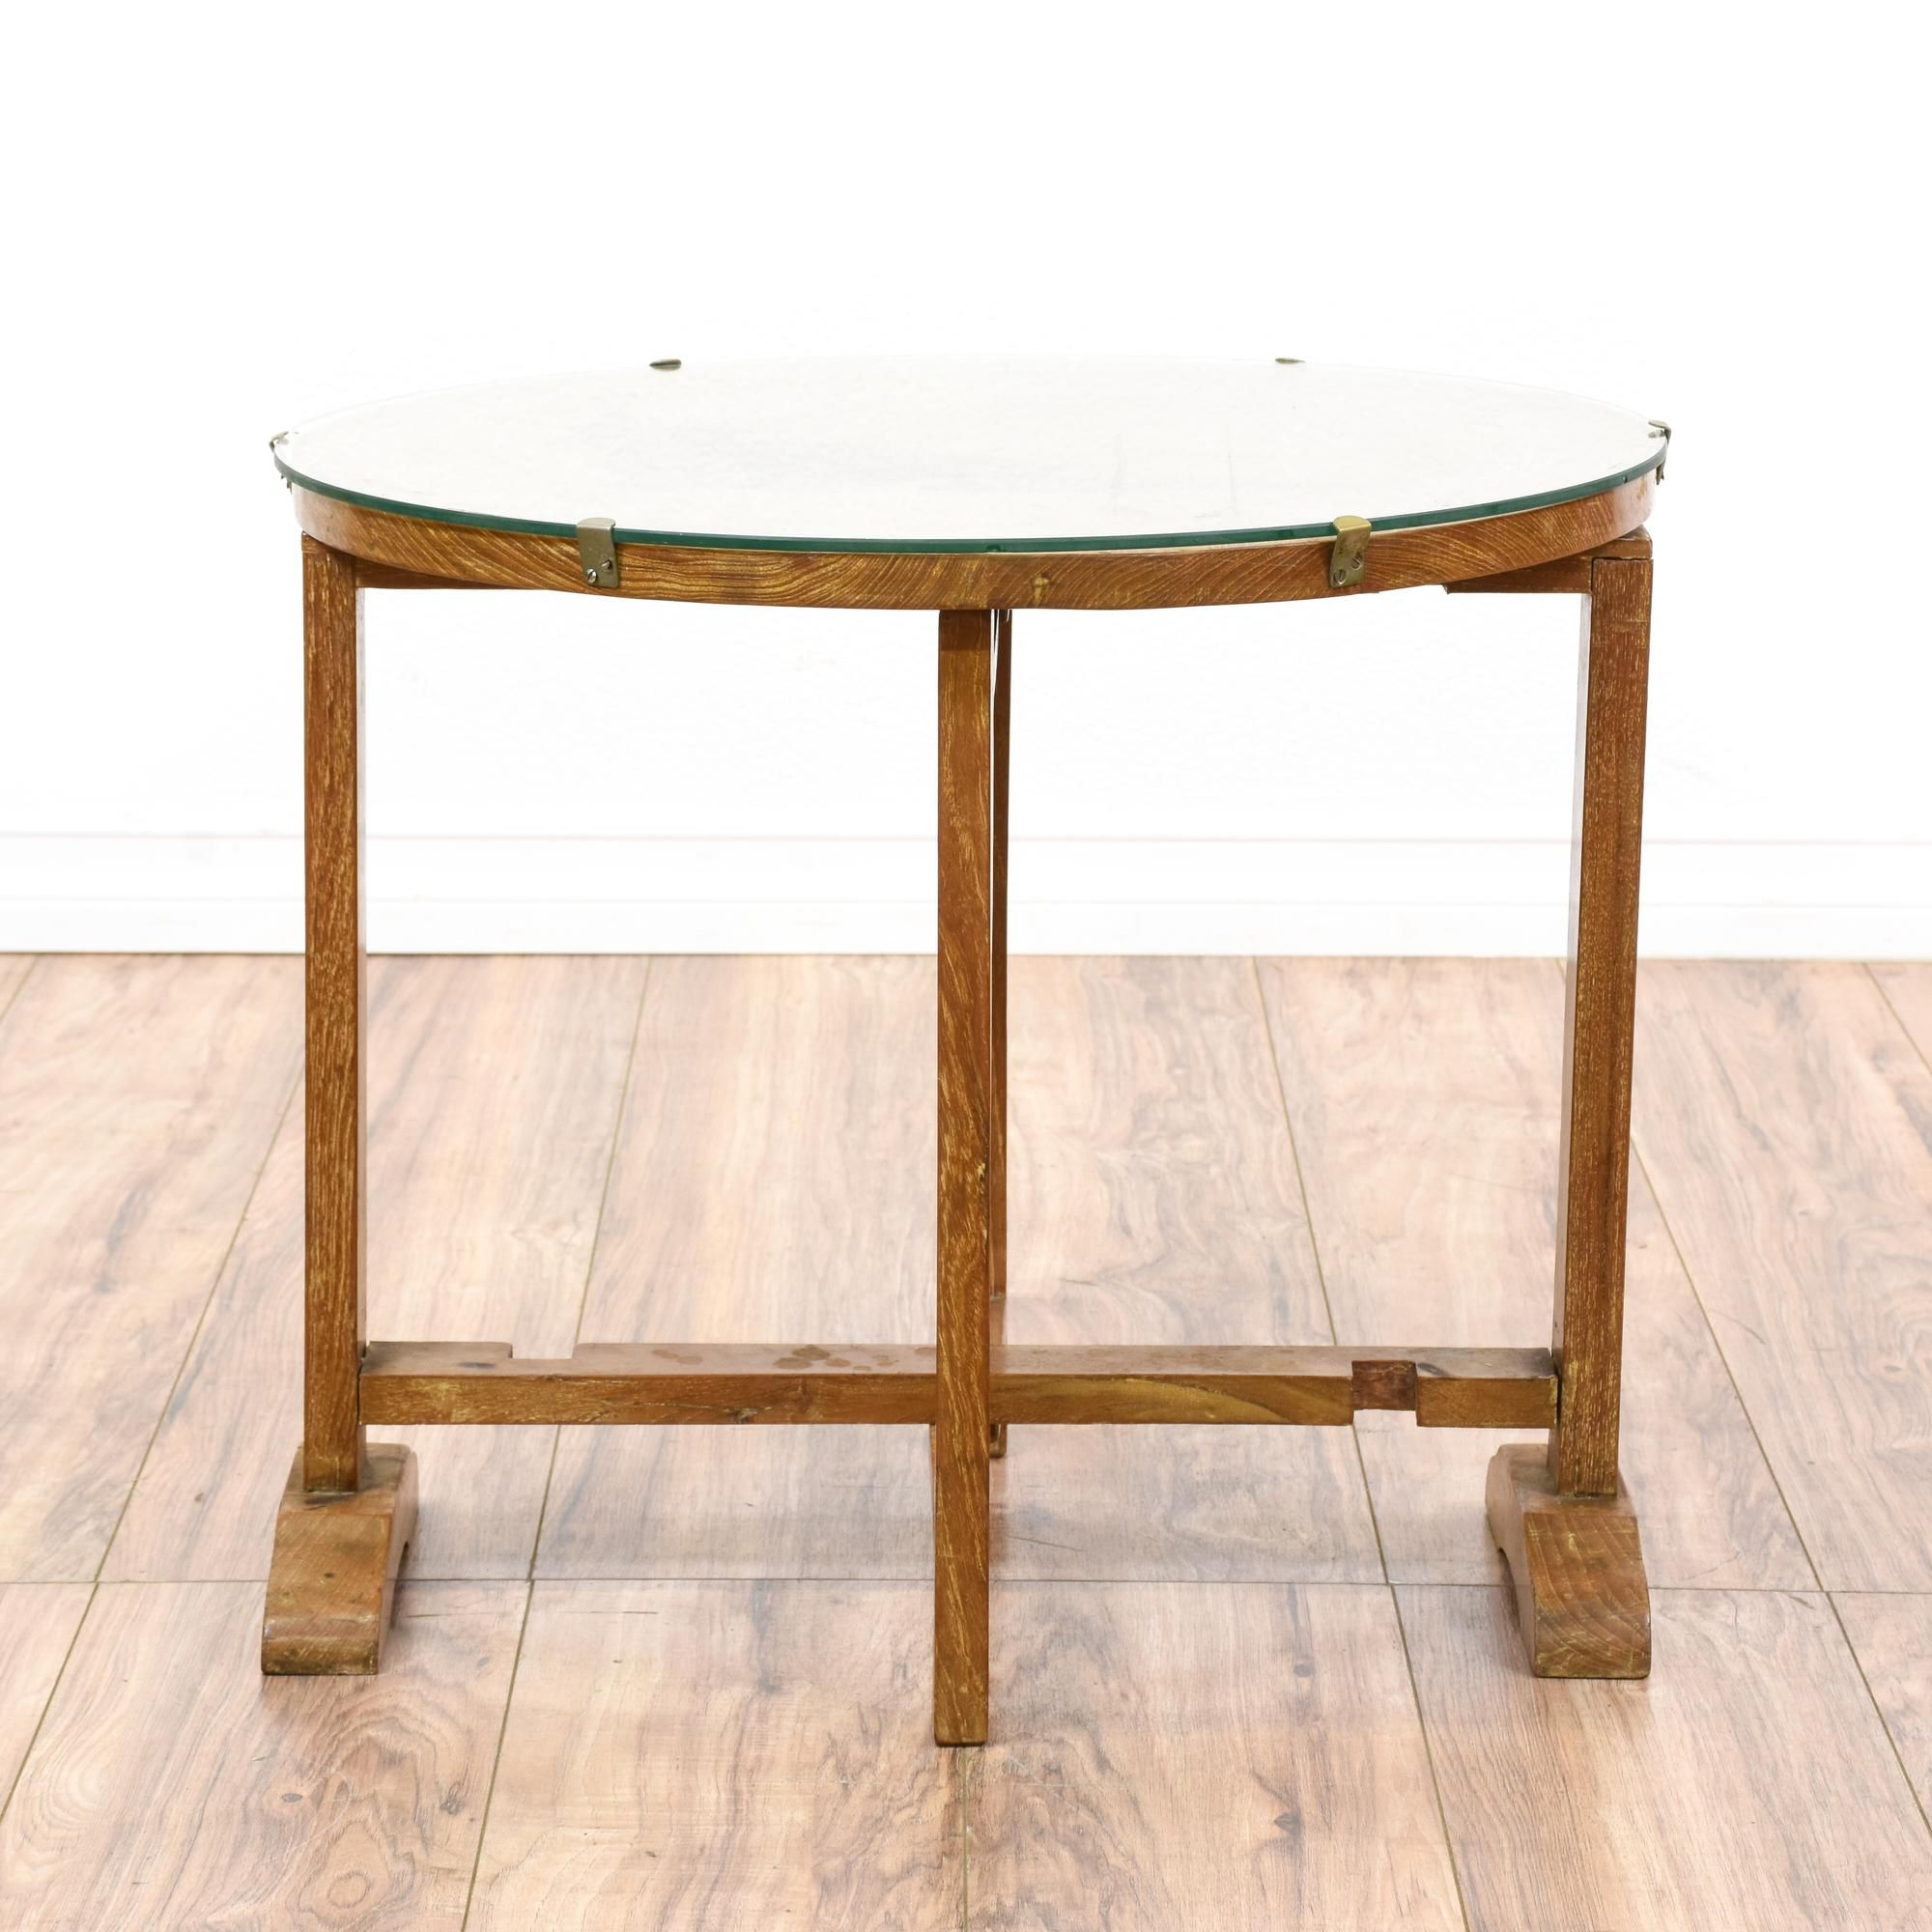 Round Oak End Tables This Asian End Table Is Featured In A Solid Wood With A